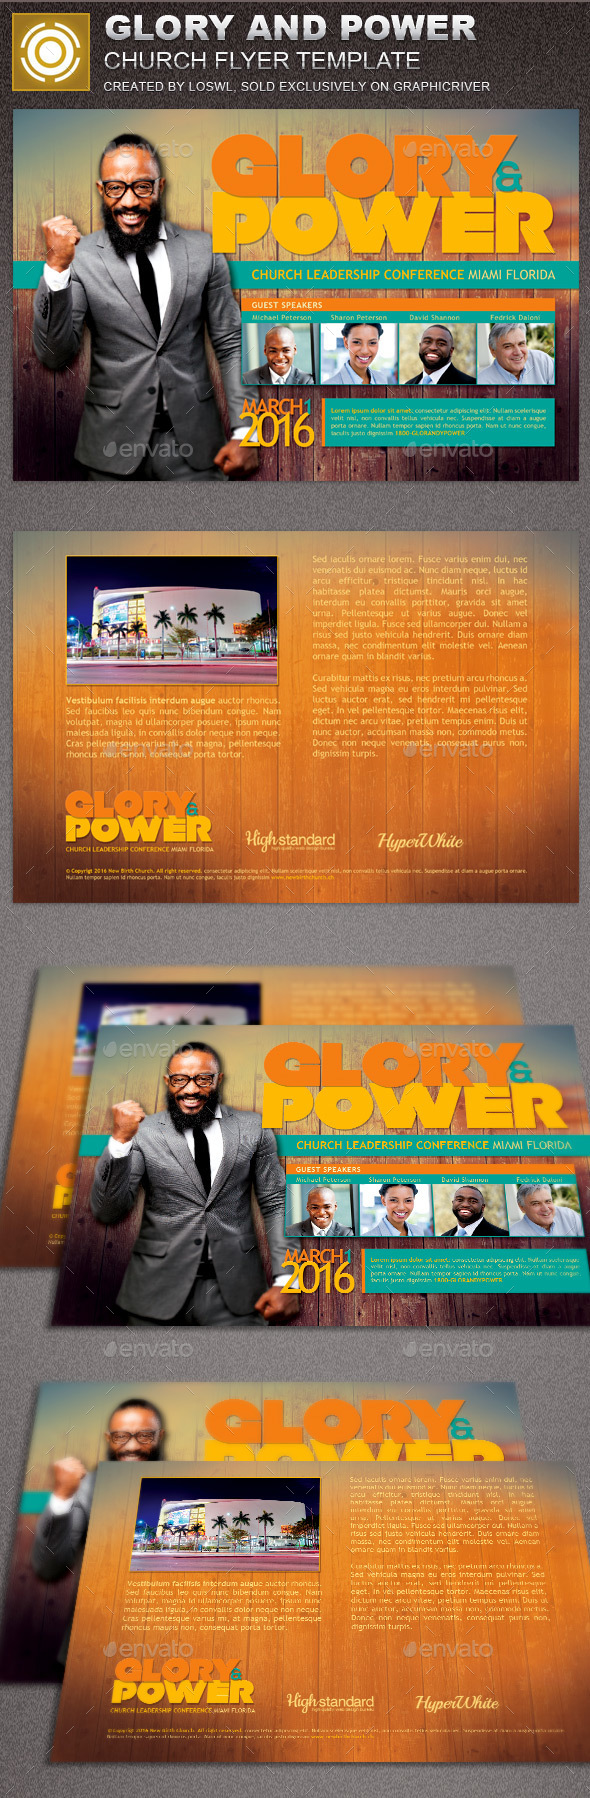 Glory and Power Church Flyer Template - Church Flyers